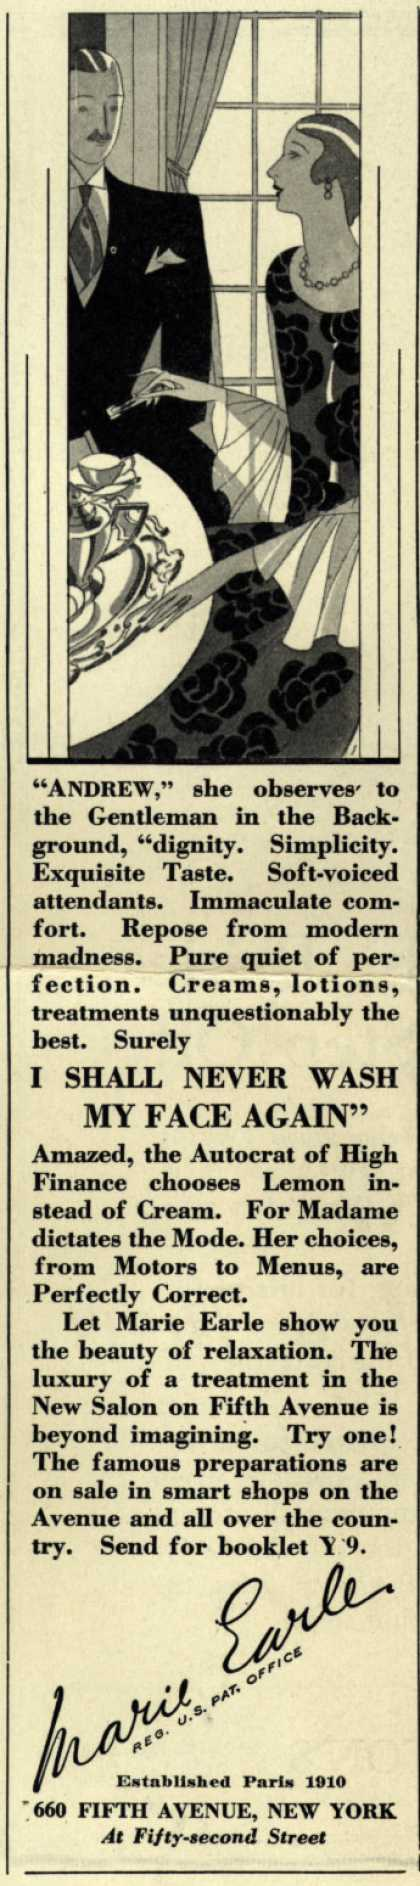 Marie Earle's Cosmetics – I Shall Never Wash My Face Again (1927)